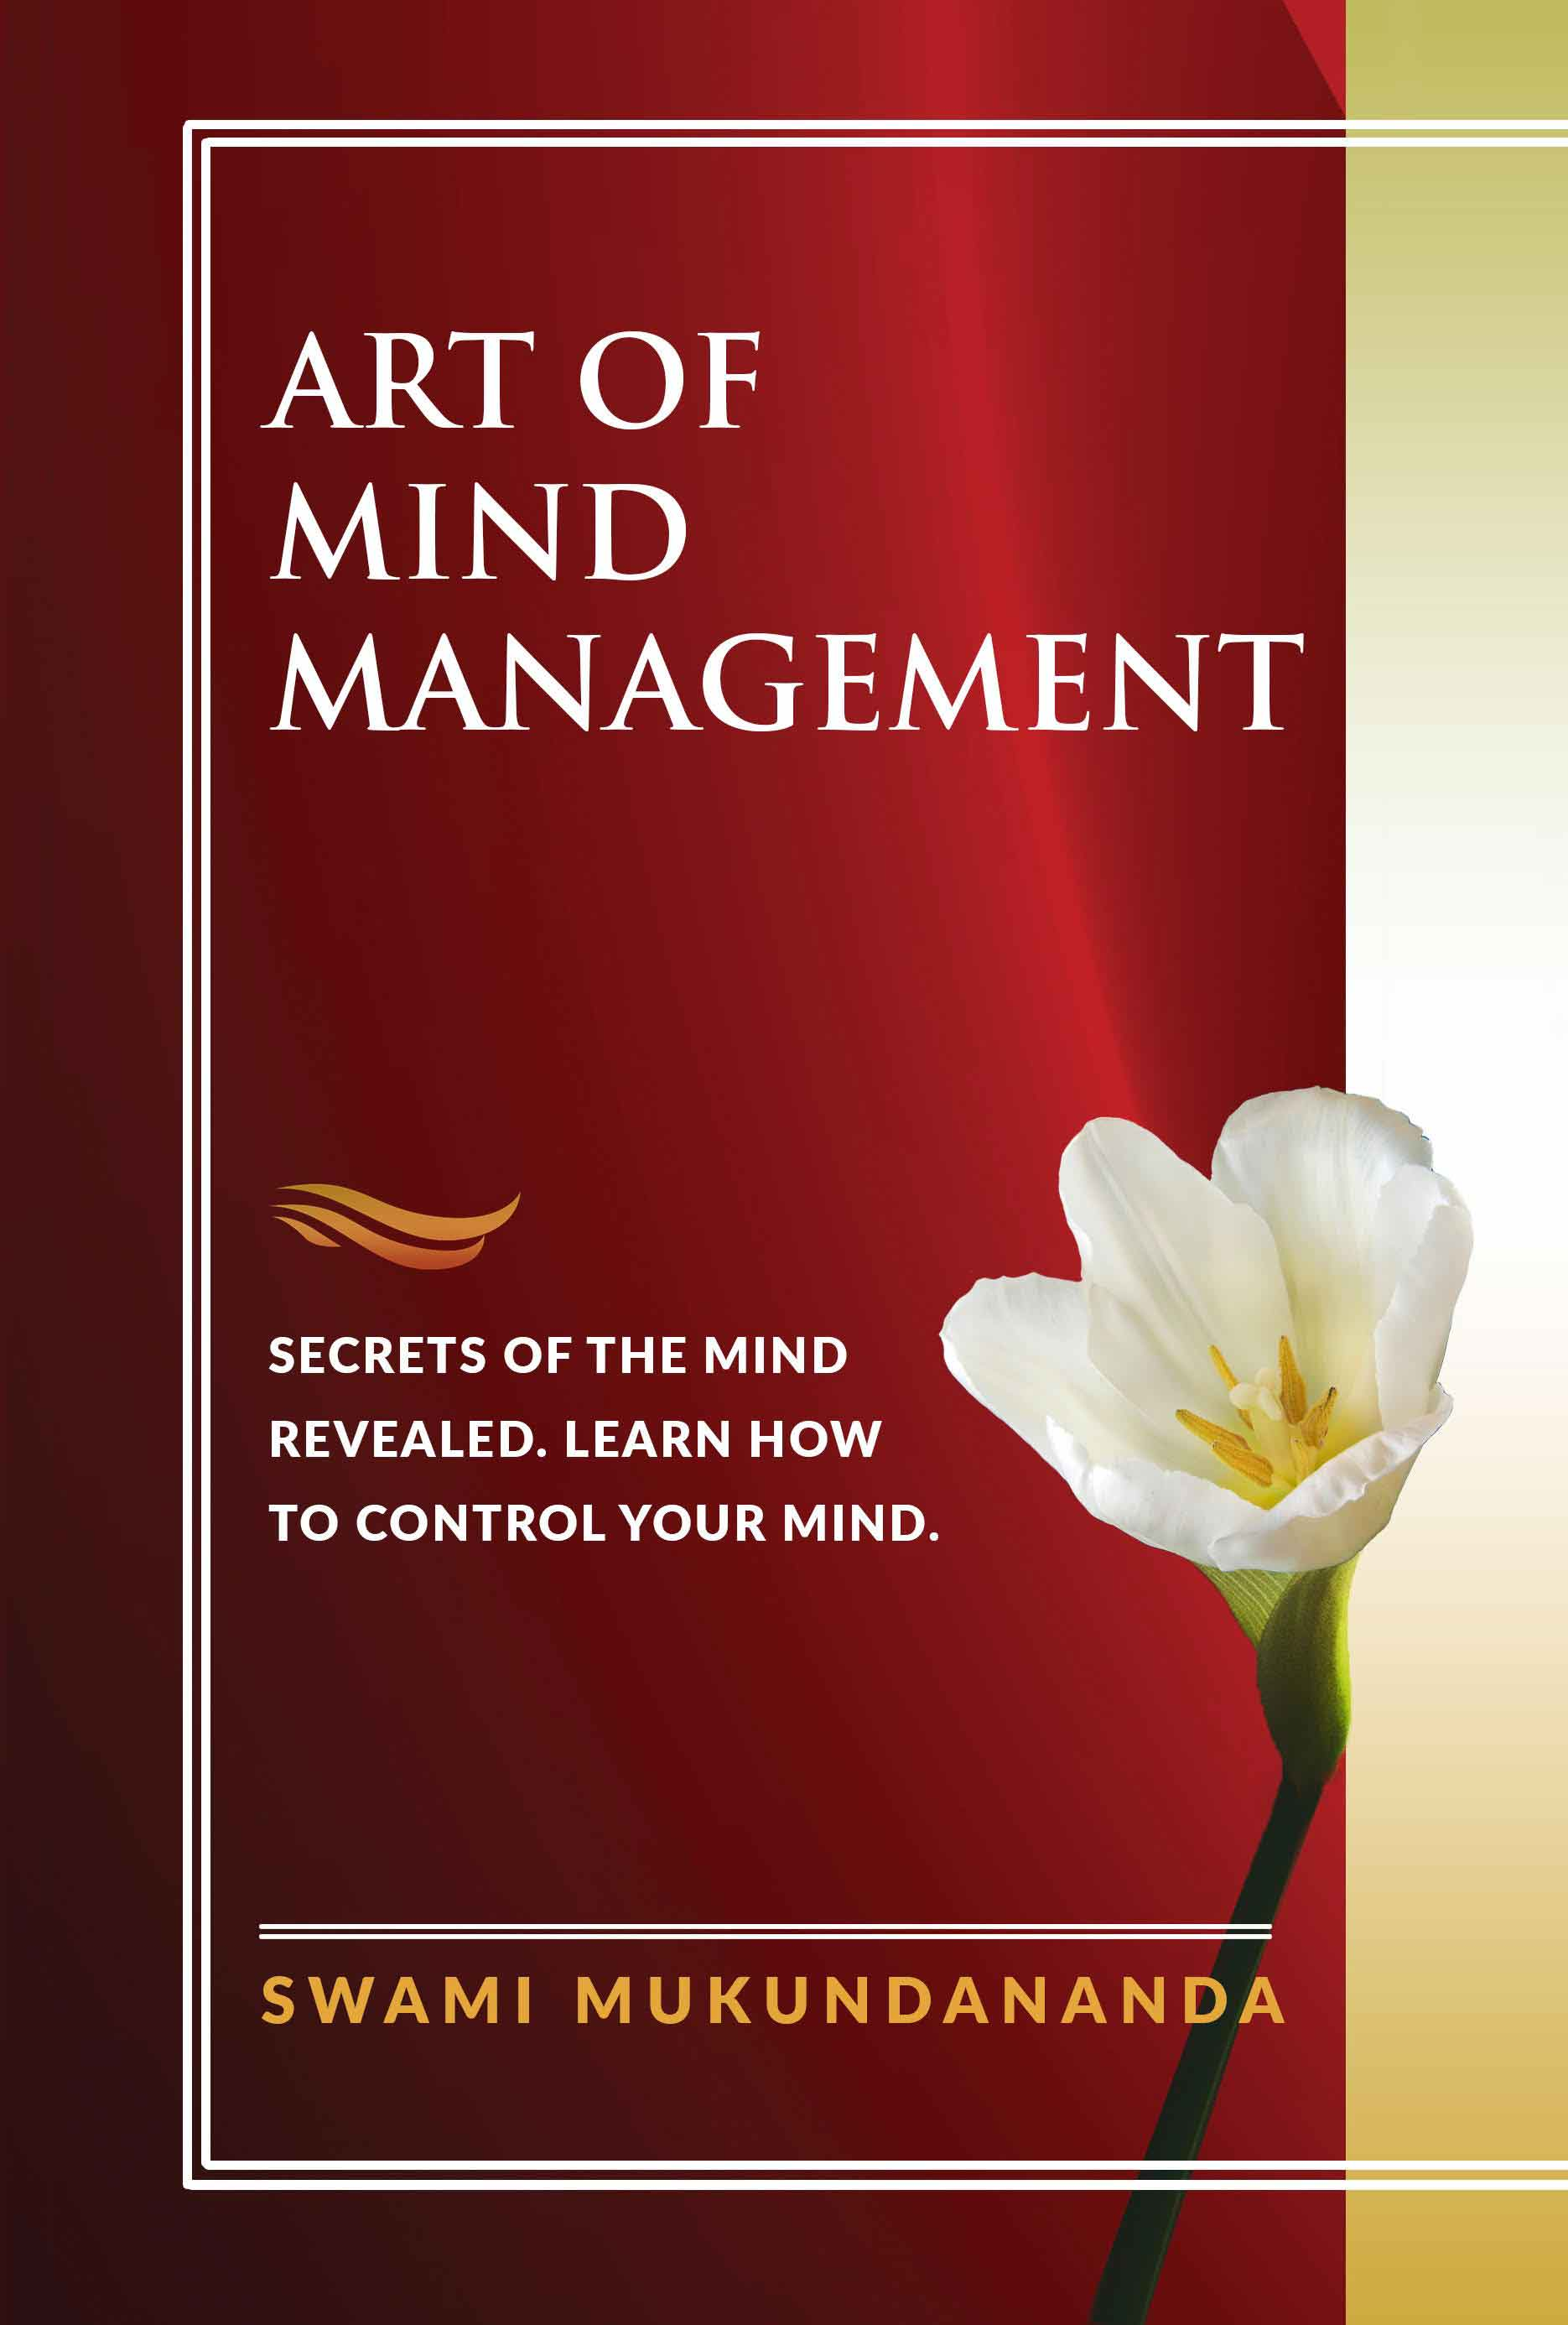 Art-of-Mind-Management-Book-Swami-Mukundananda